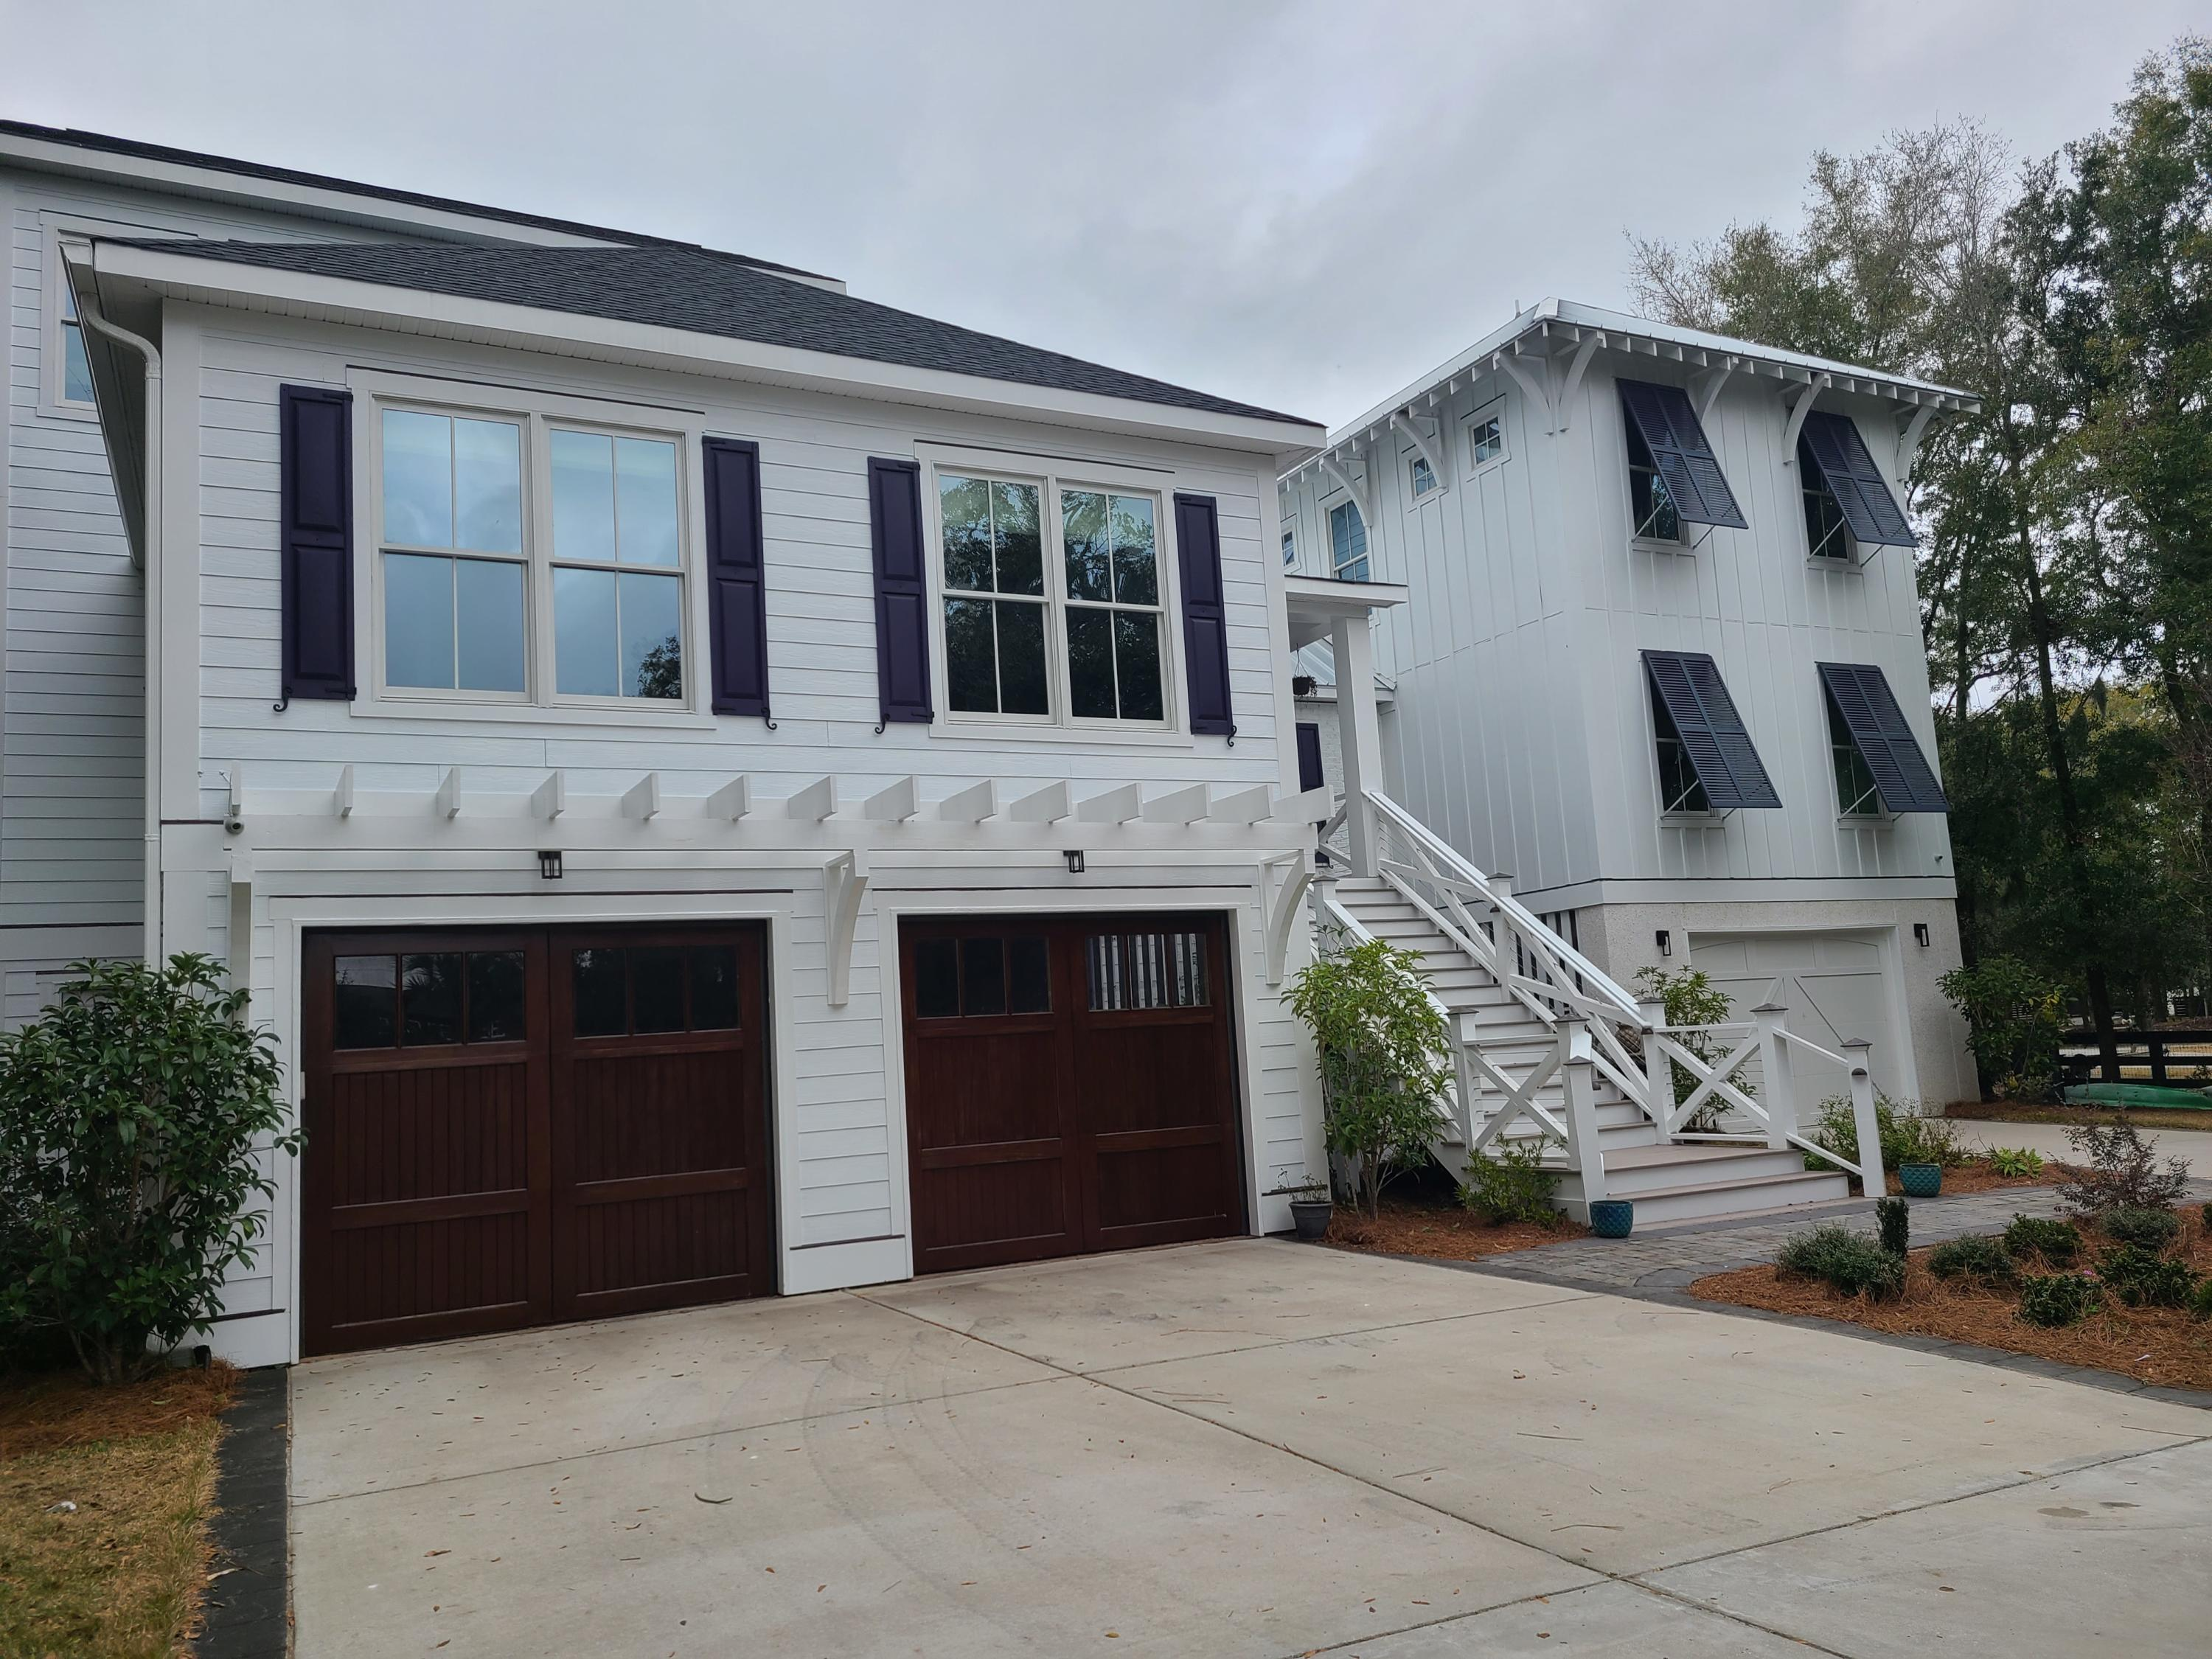 Remleys Point Homes For Sale - 115 2nd, Mount Pleasant, SC - 19